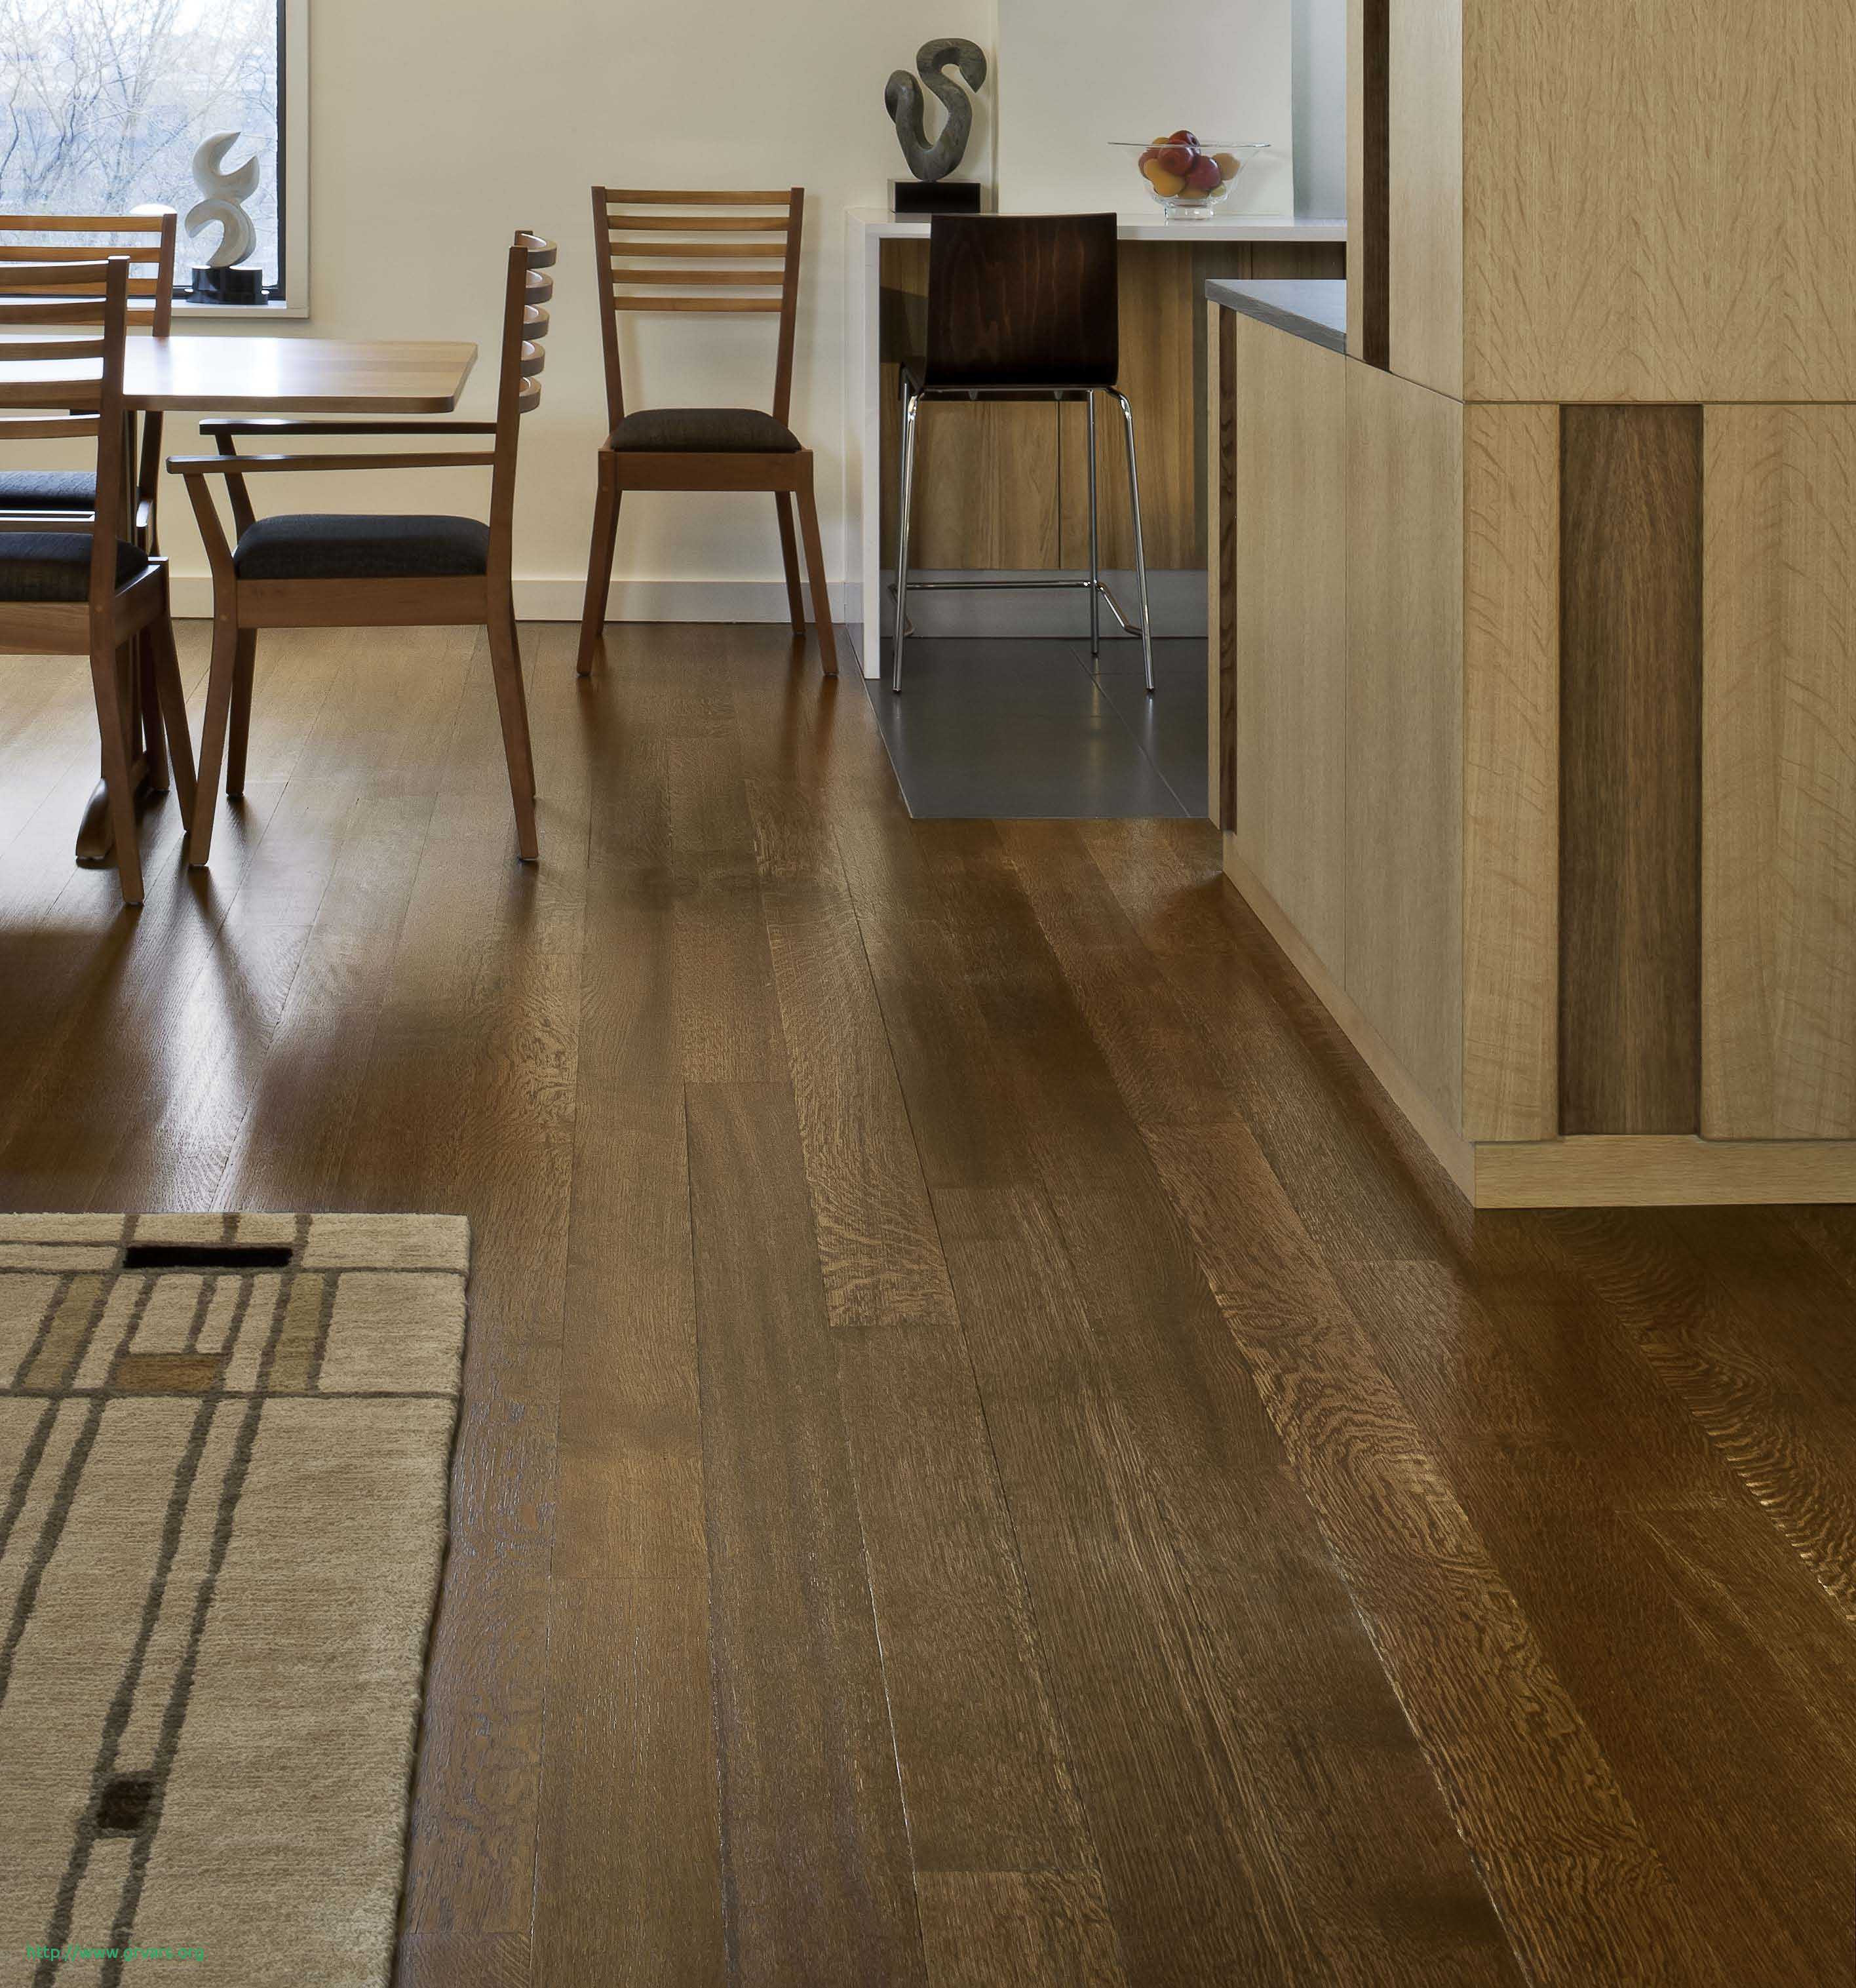 hardwood flooring unfinished prices of 21 inspirant best prices for laminate wood flooring ideas blog regarding best prices for laminate wood flooring beau engaging discount hardwood flooring 5 where to buy inspirational